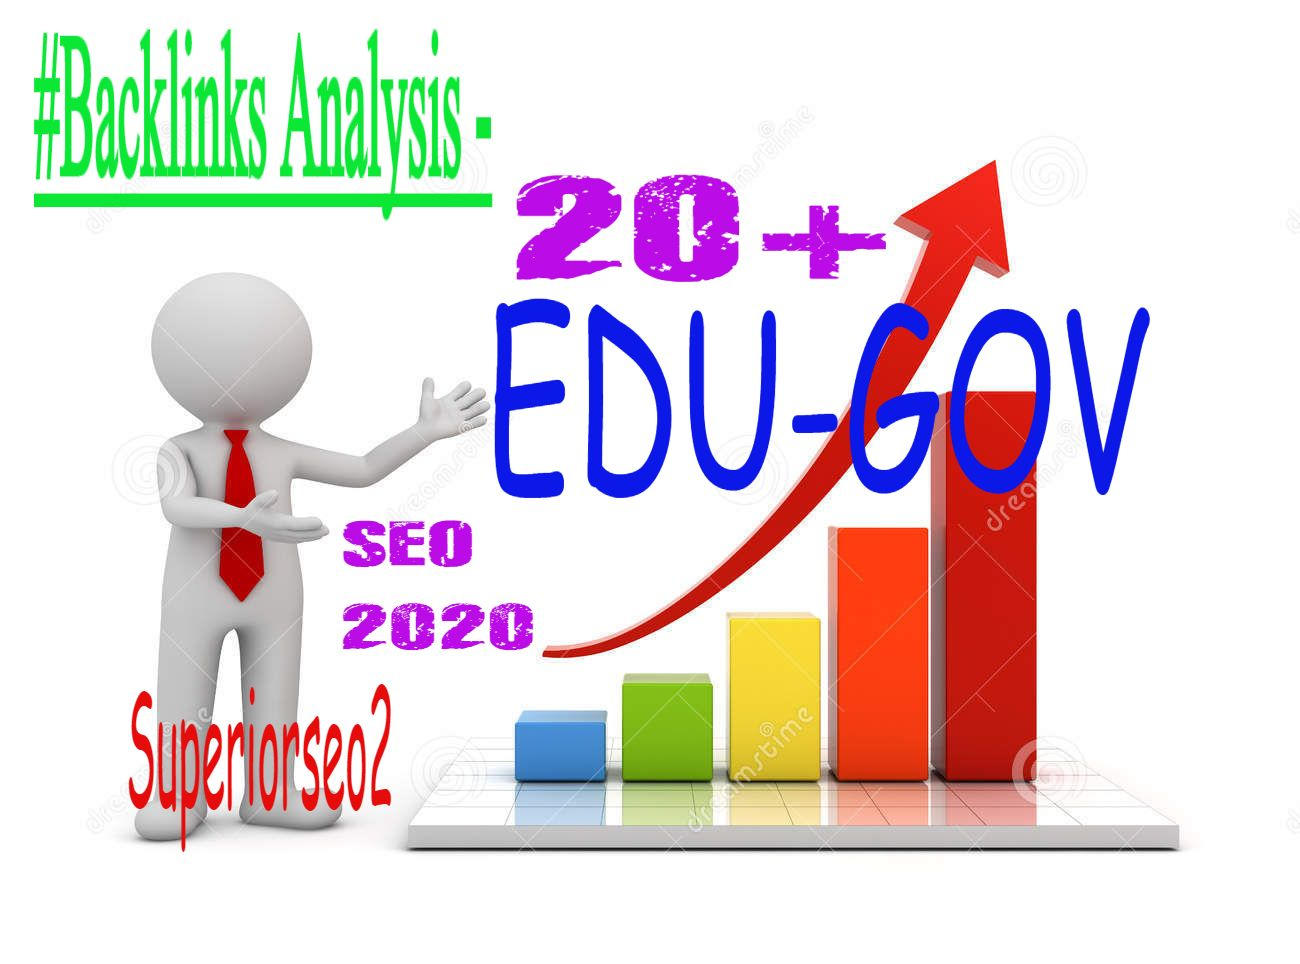 Build 21 US Based EDU. GOV Authority SEO Backlinks New Year 2020